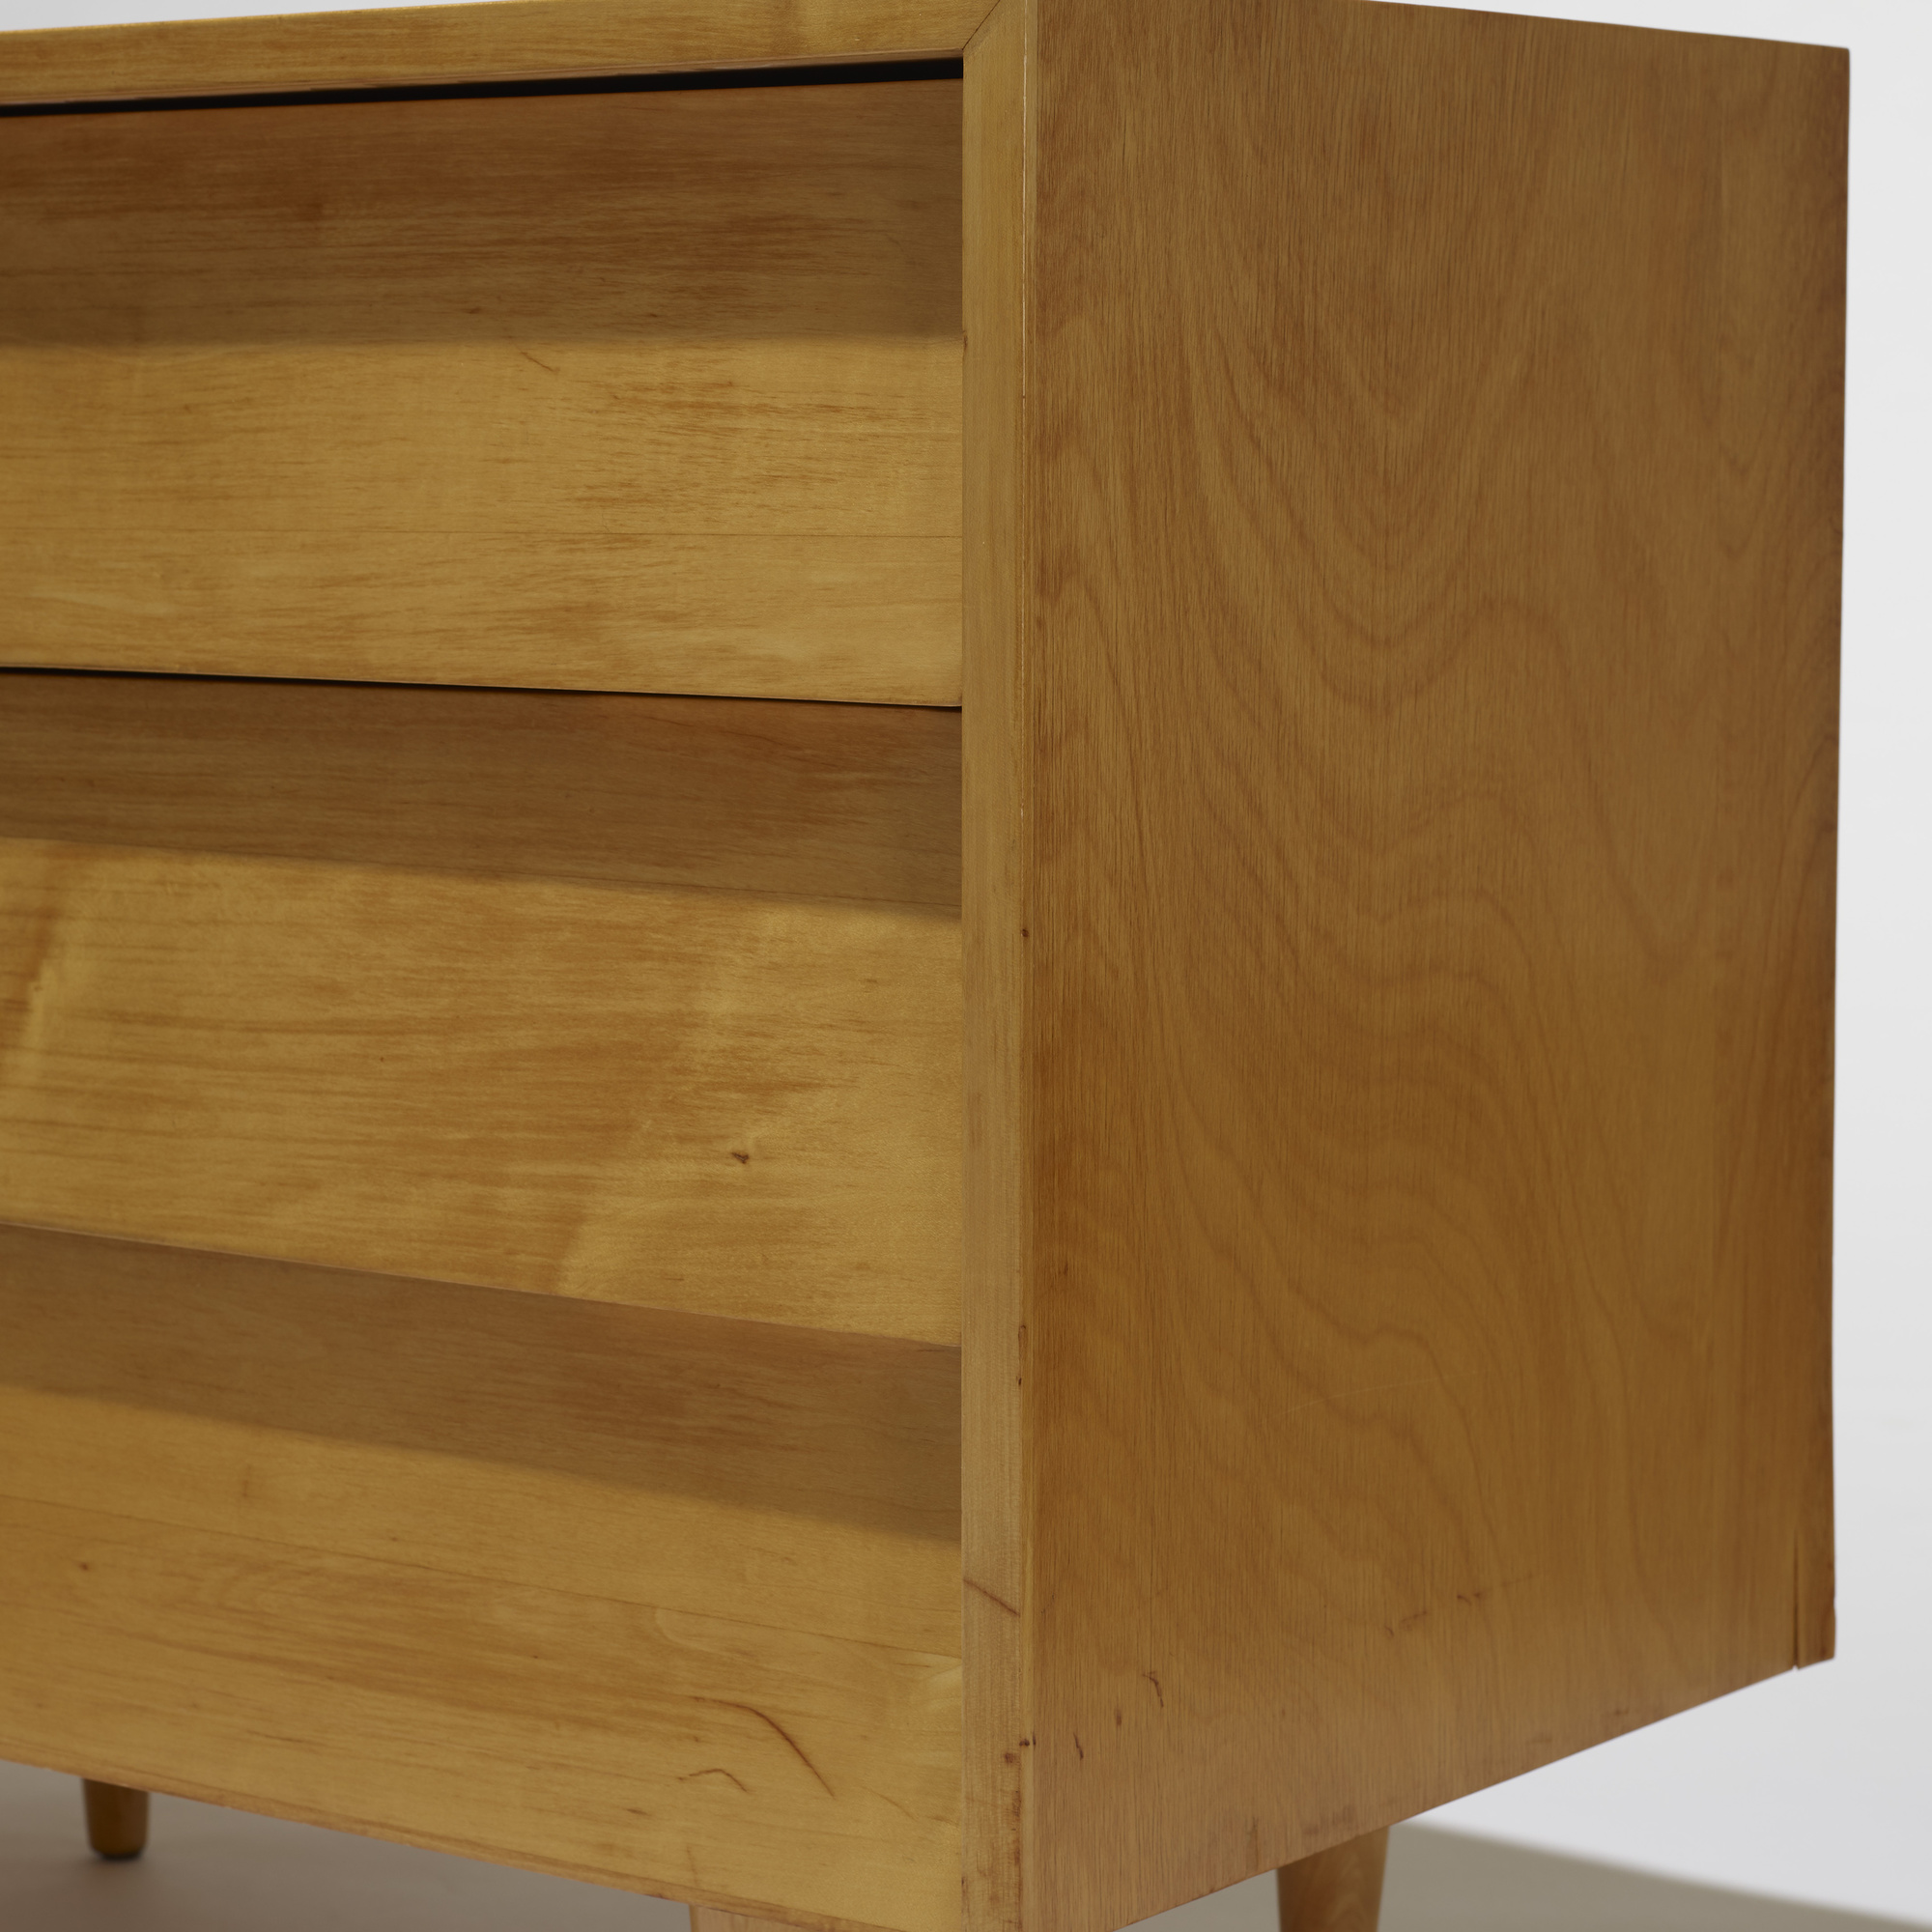 167: Florence Knoll / cabinets, pair (2 of 2)